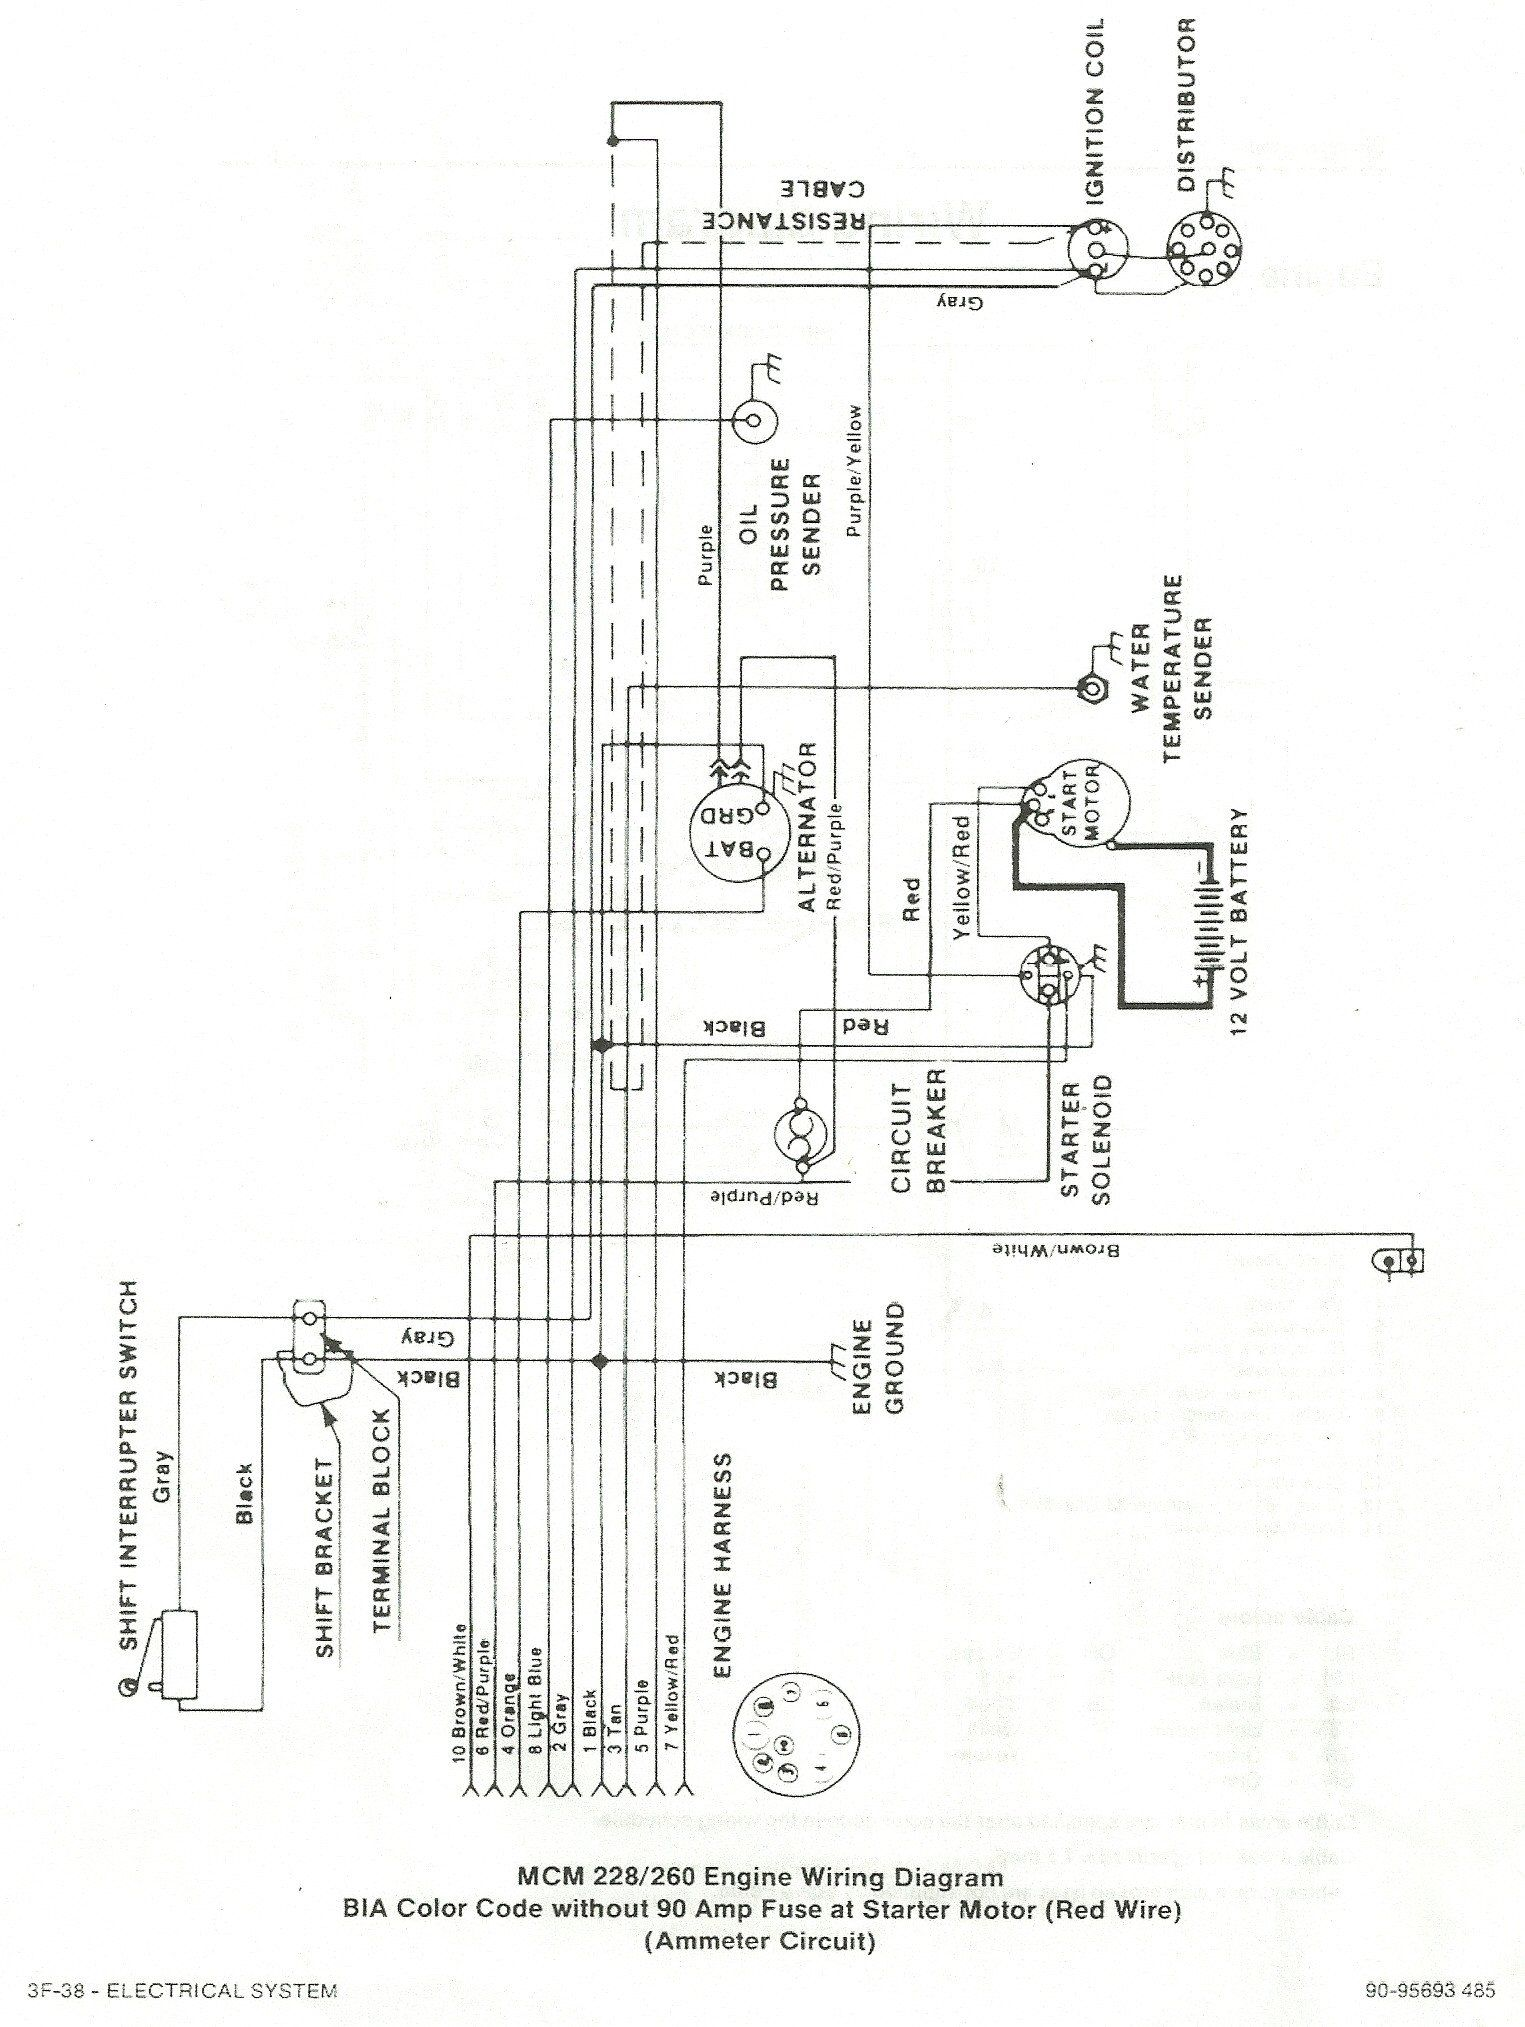 7 4 mercruiser engine diagram wiring diagram toolbox7 4 mercruiser wiring diagram wiring diagrams trigg 7 [ 1525 x 2027 Pixel ]